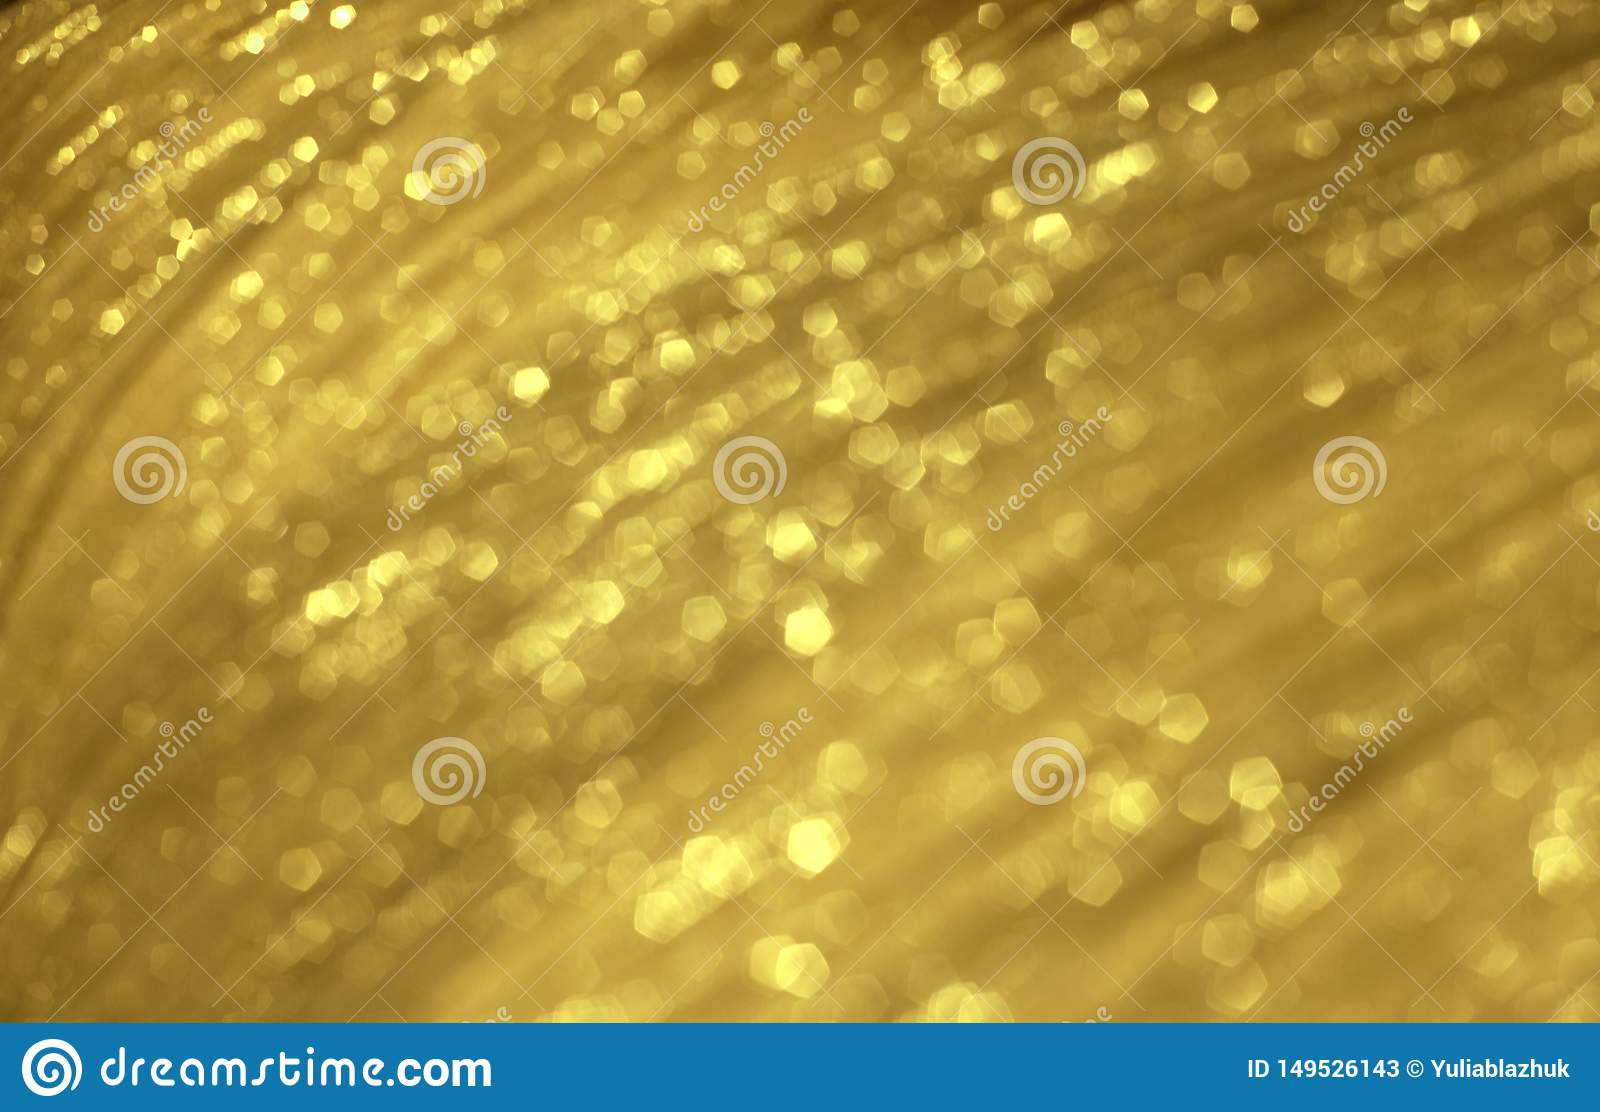 Shiny golden festive blurred tissue texture. Abstract glowing backdrop.